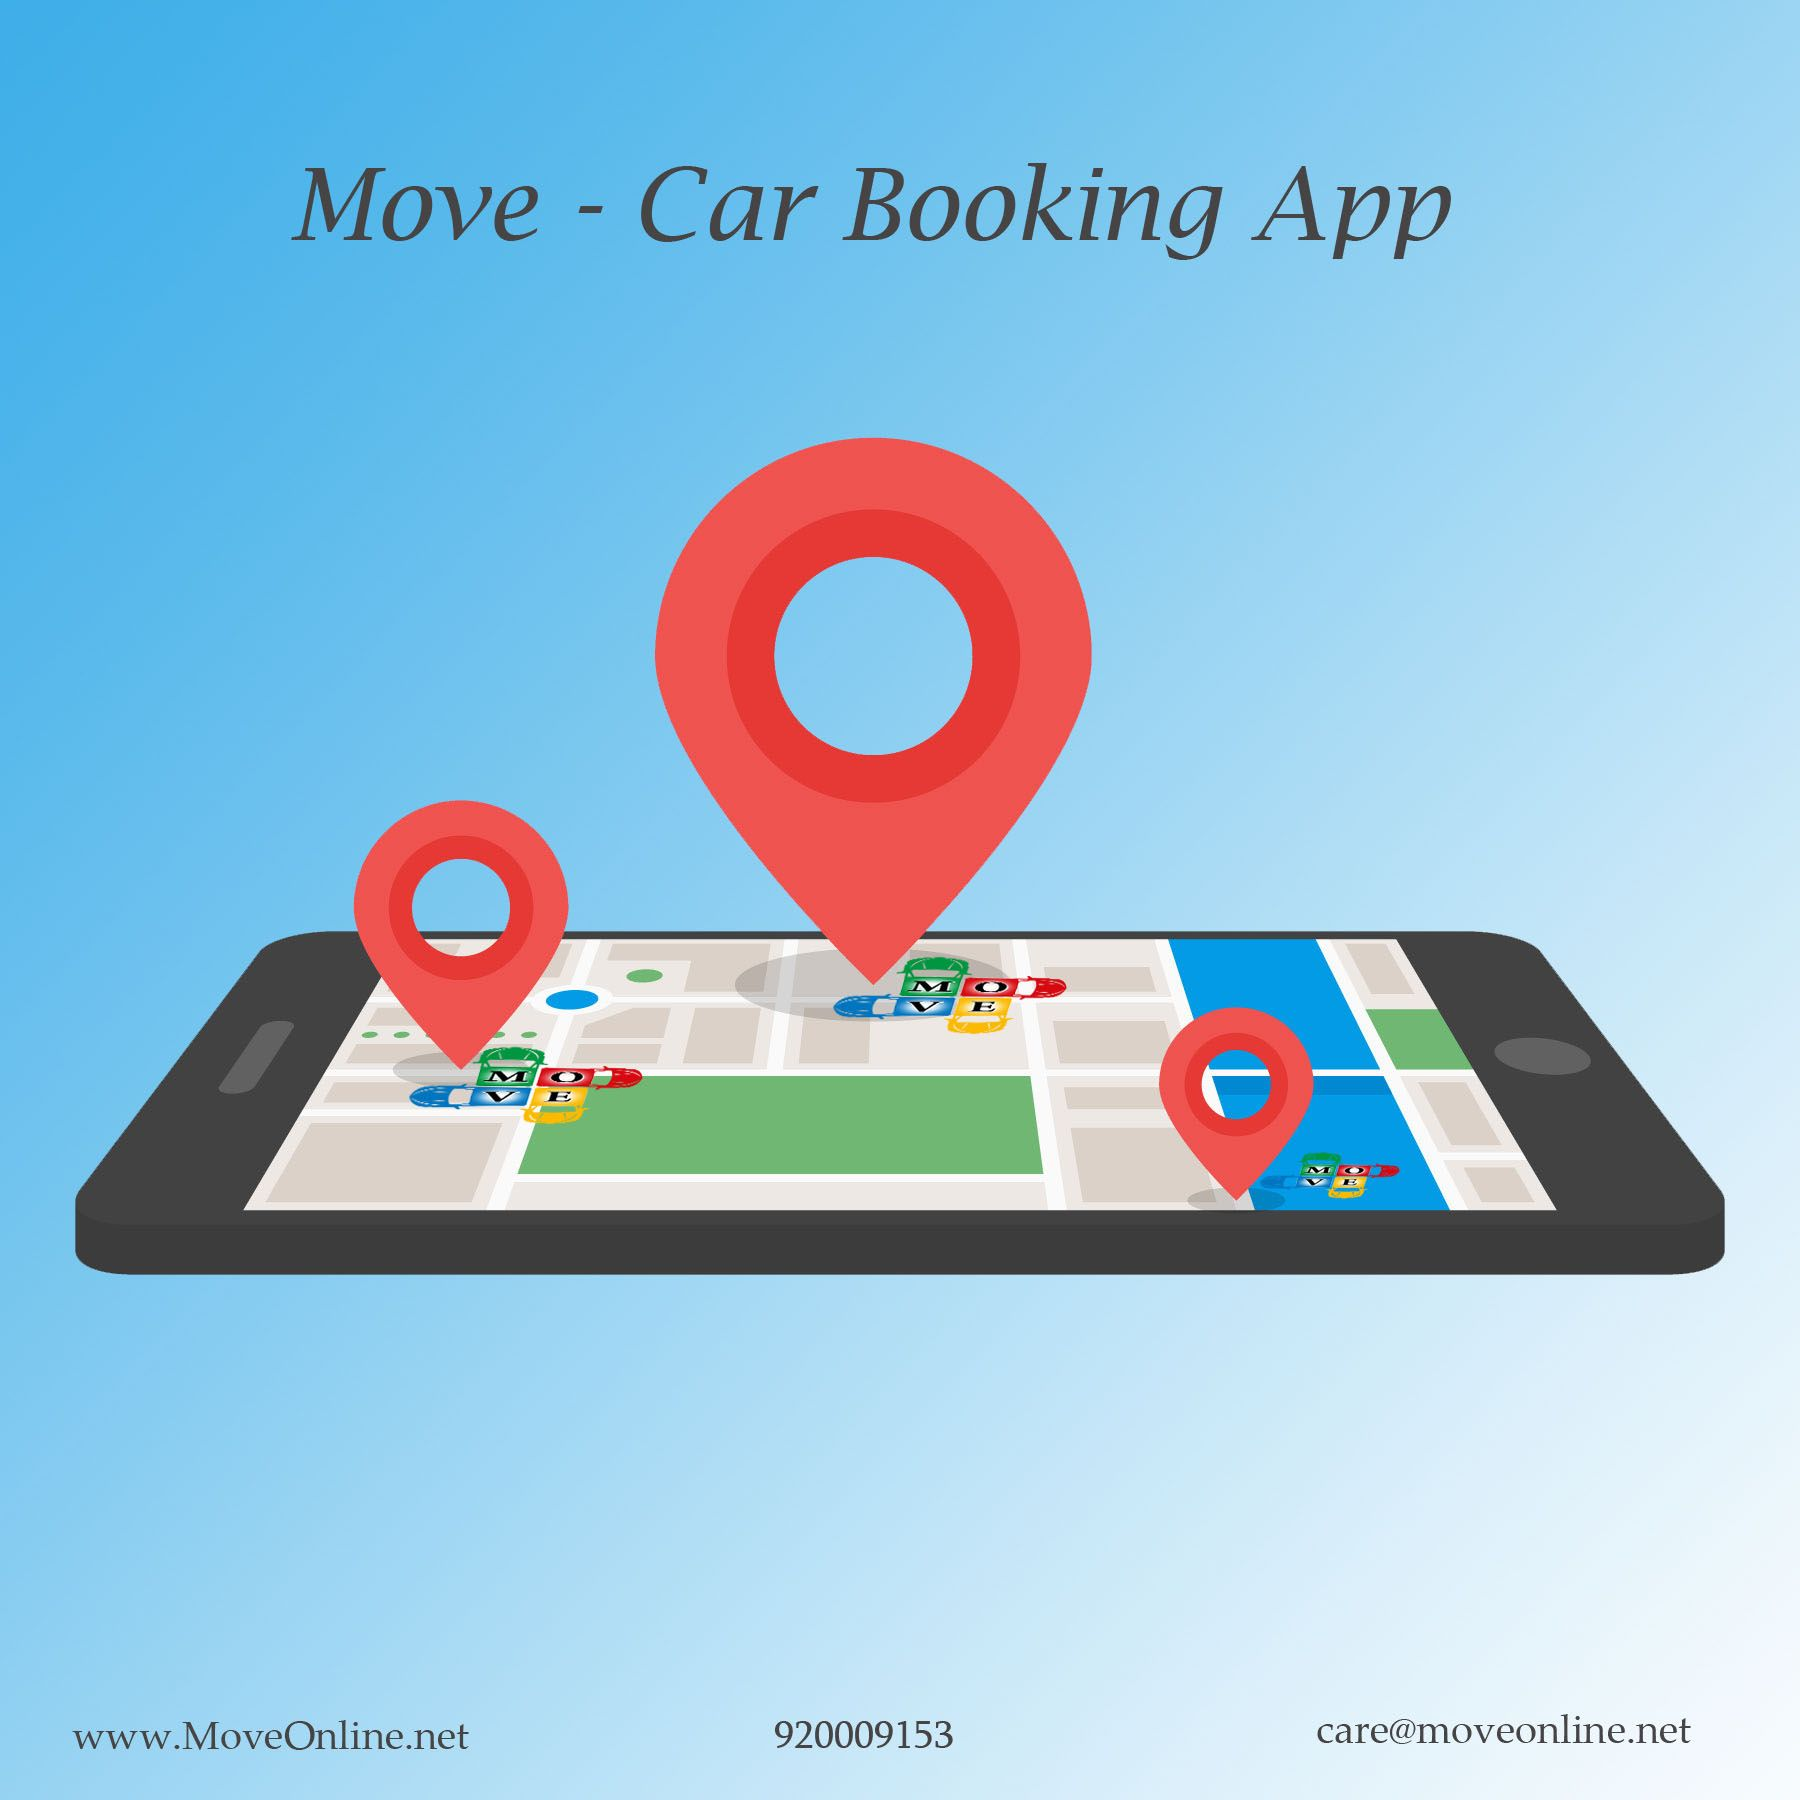 Move Car Booking App in Jeddah Move is A Car Booking App